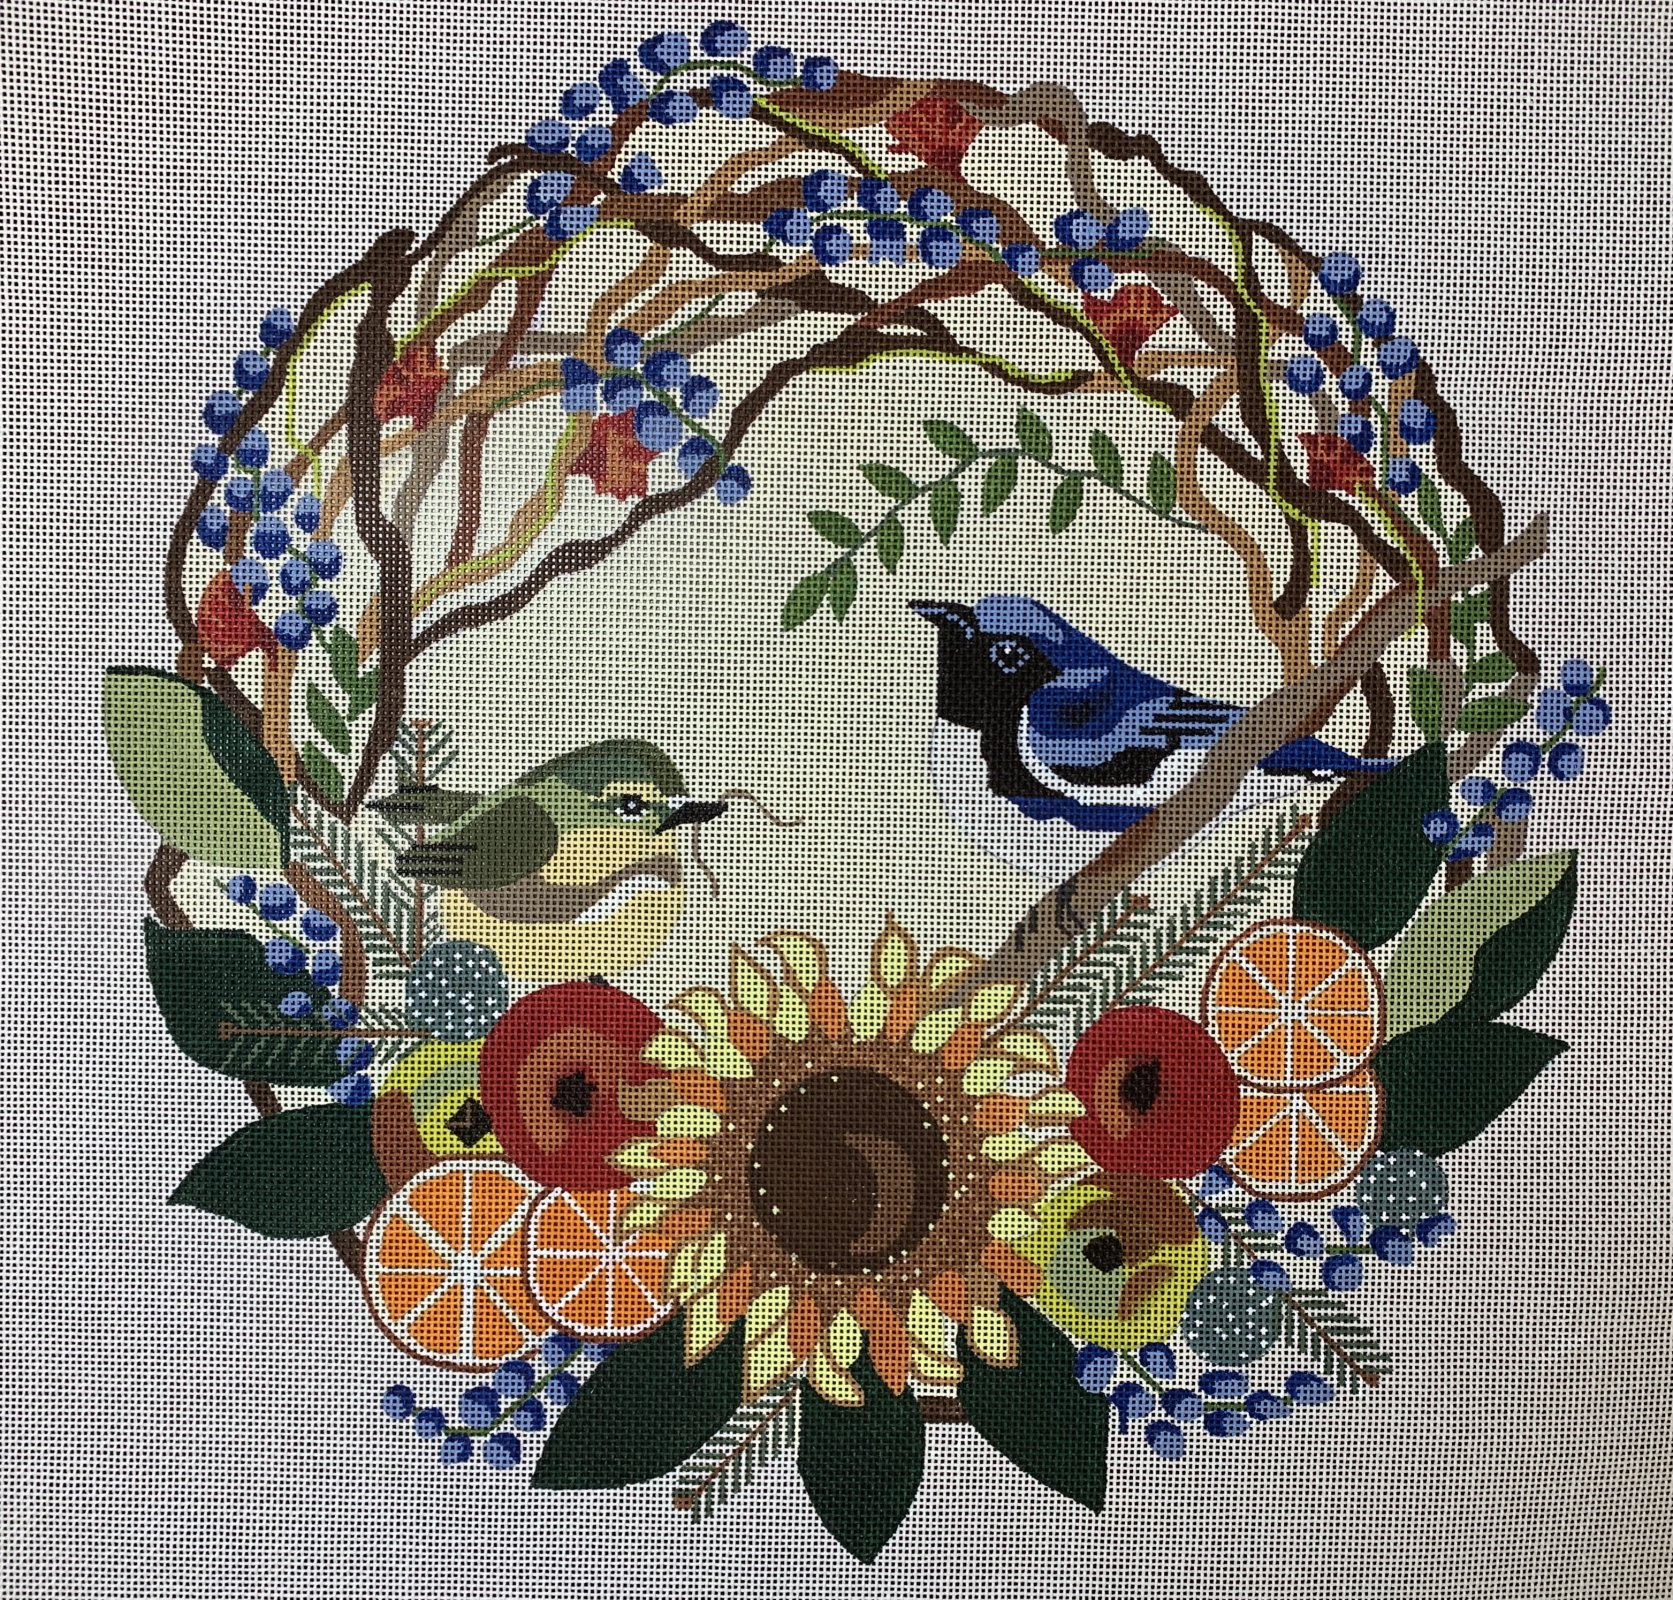 Blue Thrushes in Wreath